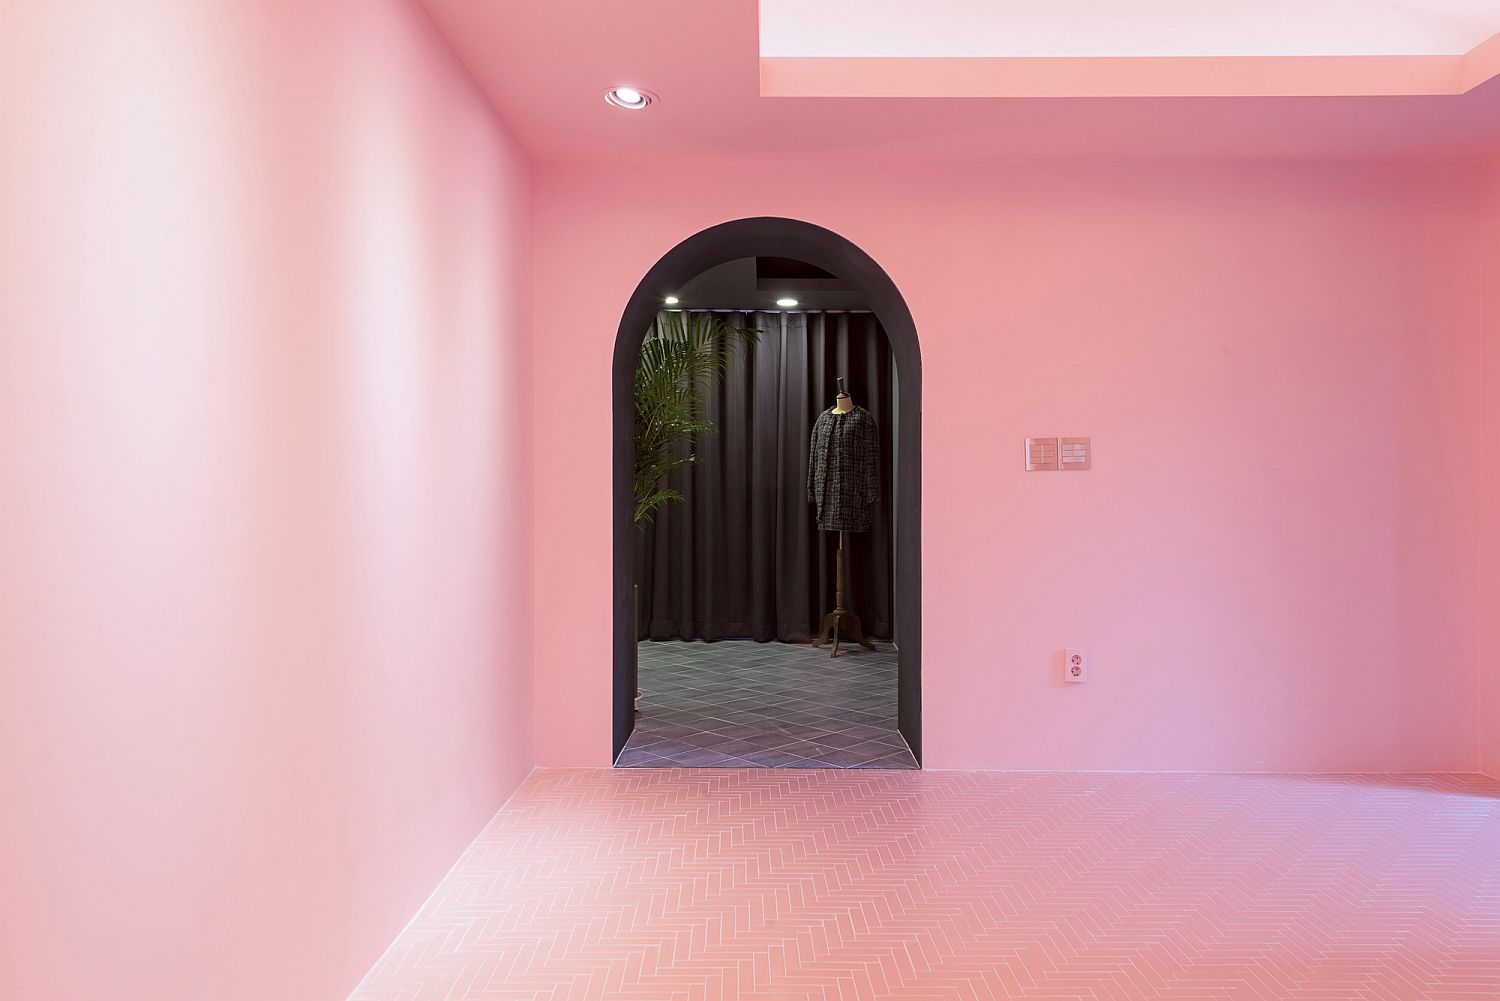 View of the gray office room from the pink entry